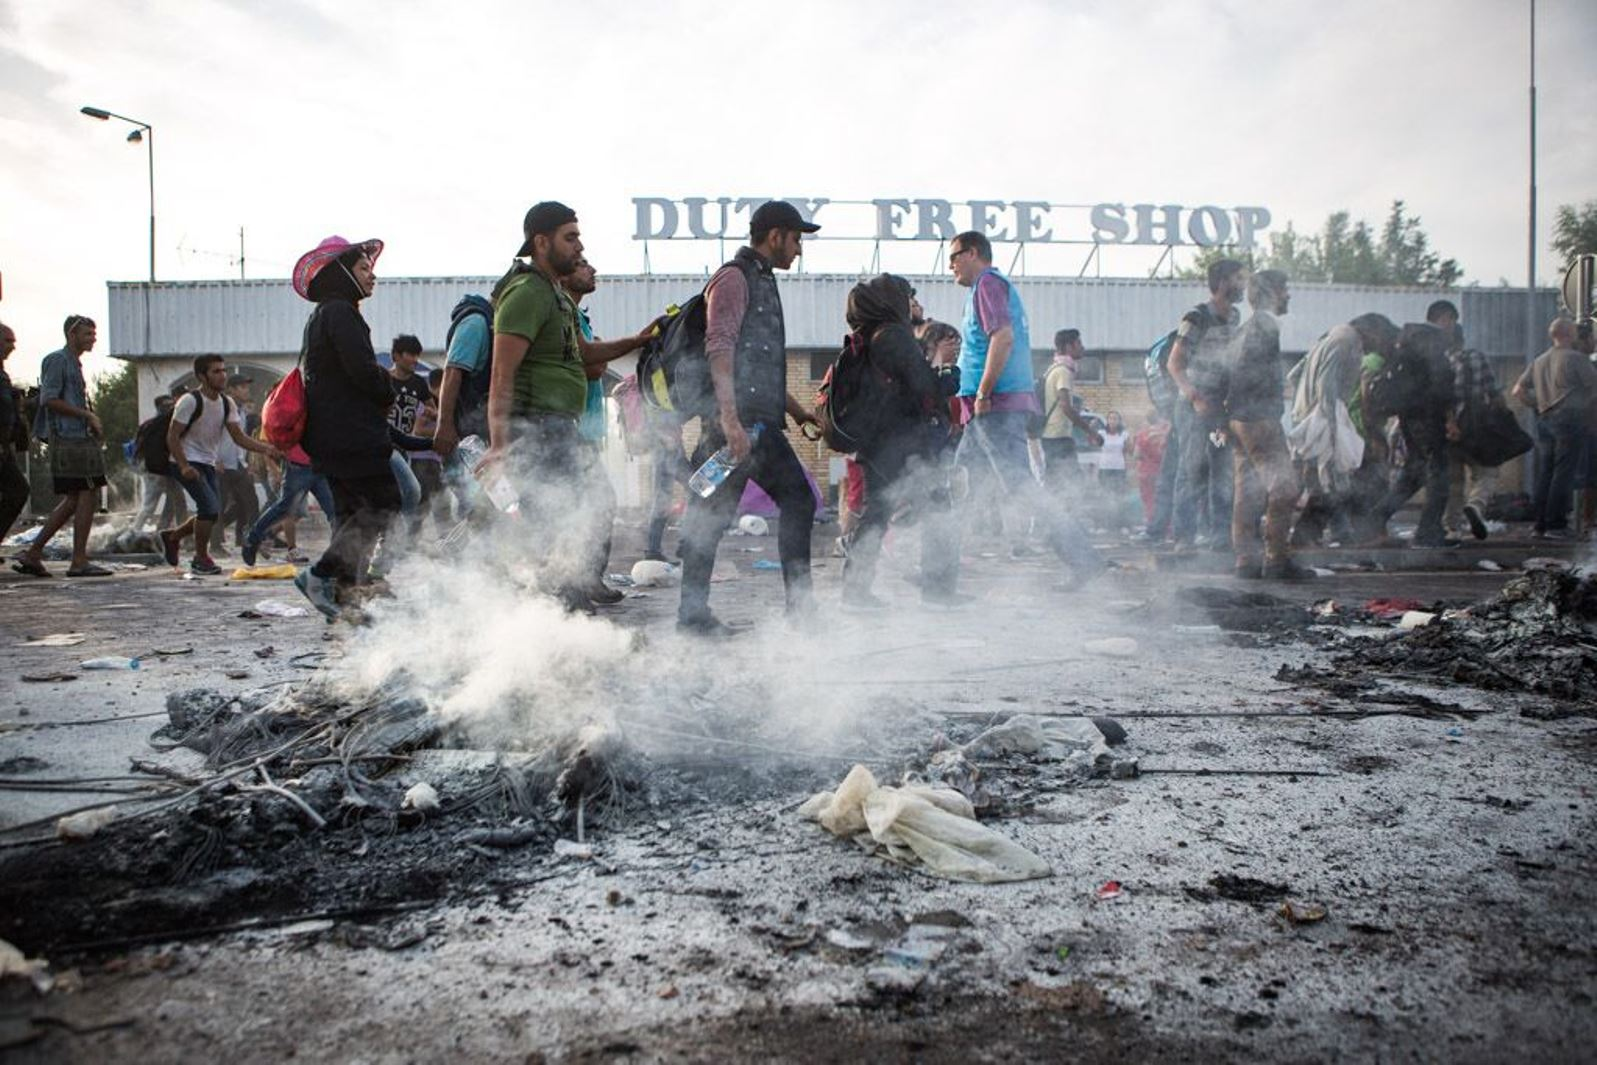 IsraAid helped refugees caught up in the rioting on the Hungary border. Photo courtesy of IsraAid